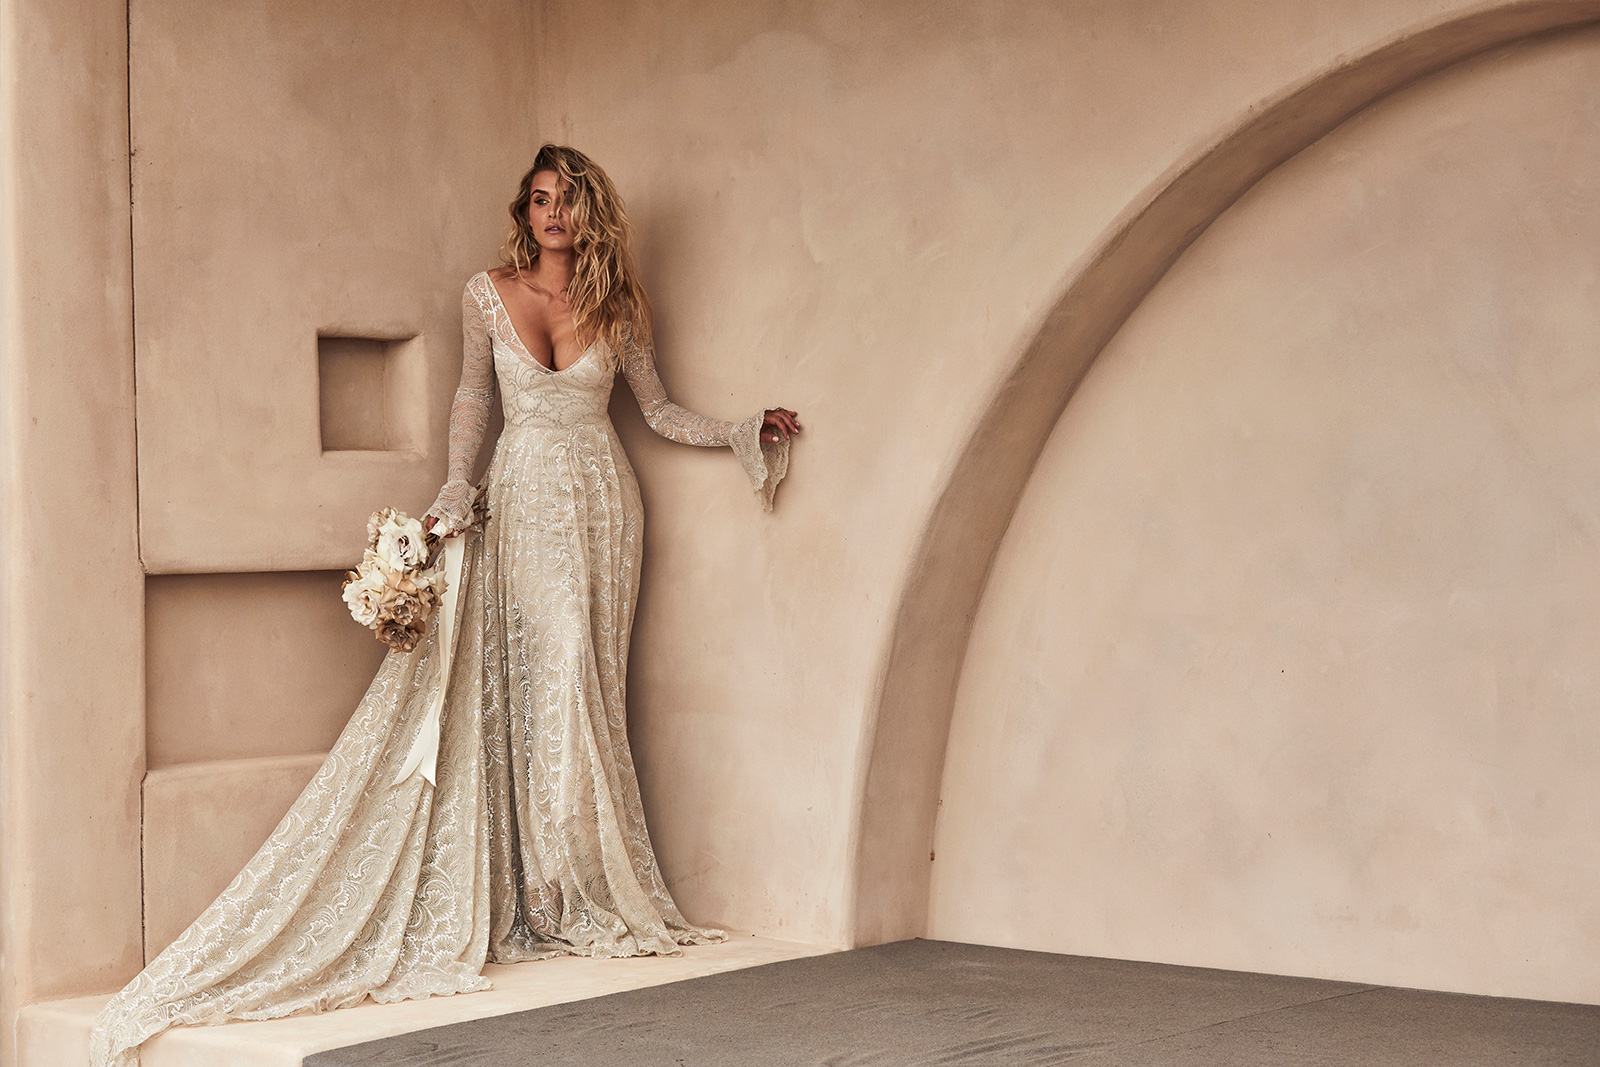 Bea-Gown-Grace-Loves-Lace-La-Bamba-Collection-3-Low-Res.jpg